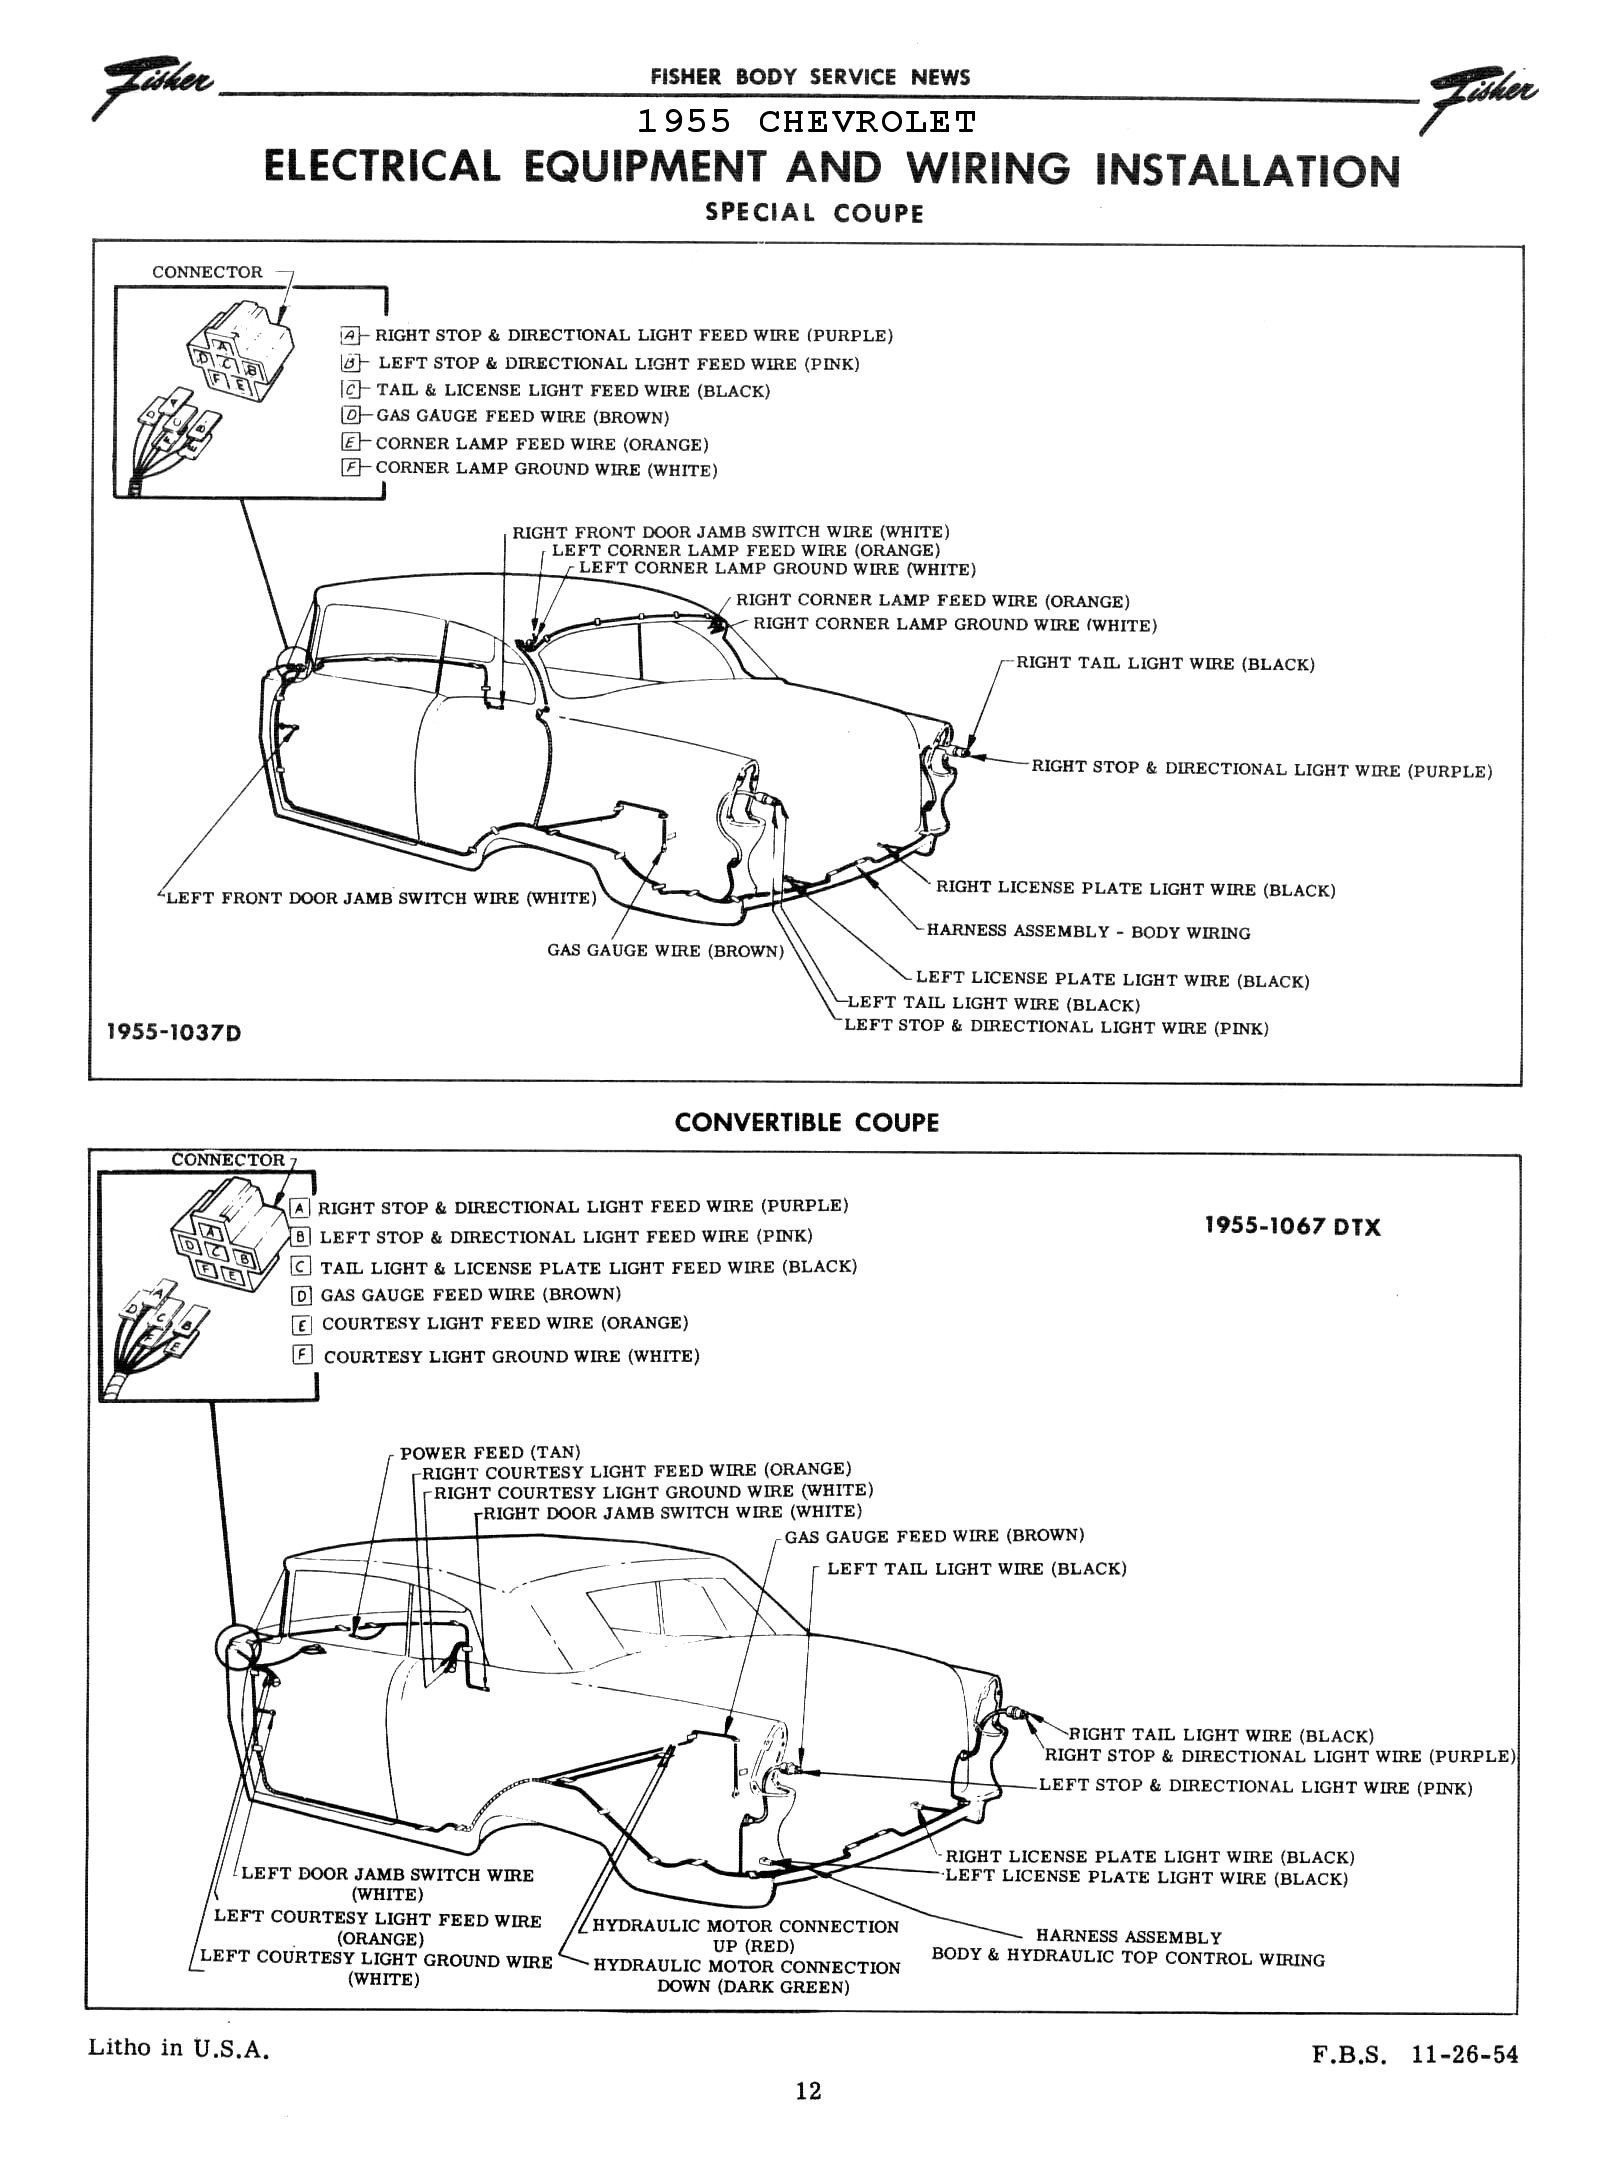 55fsn140612 chevy wiring diagrams Chevy Brake Light Switch Wiring Diagram at reclaimingppi.co